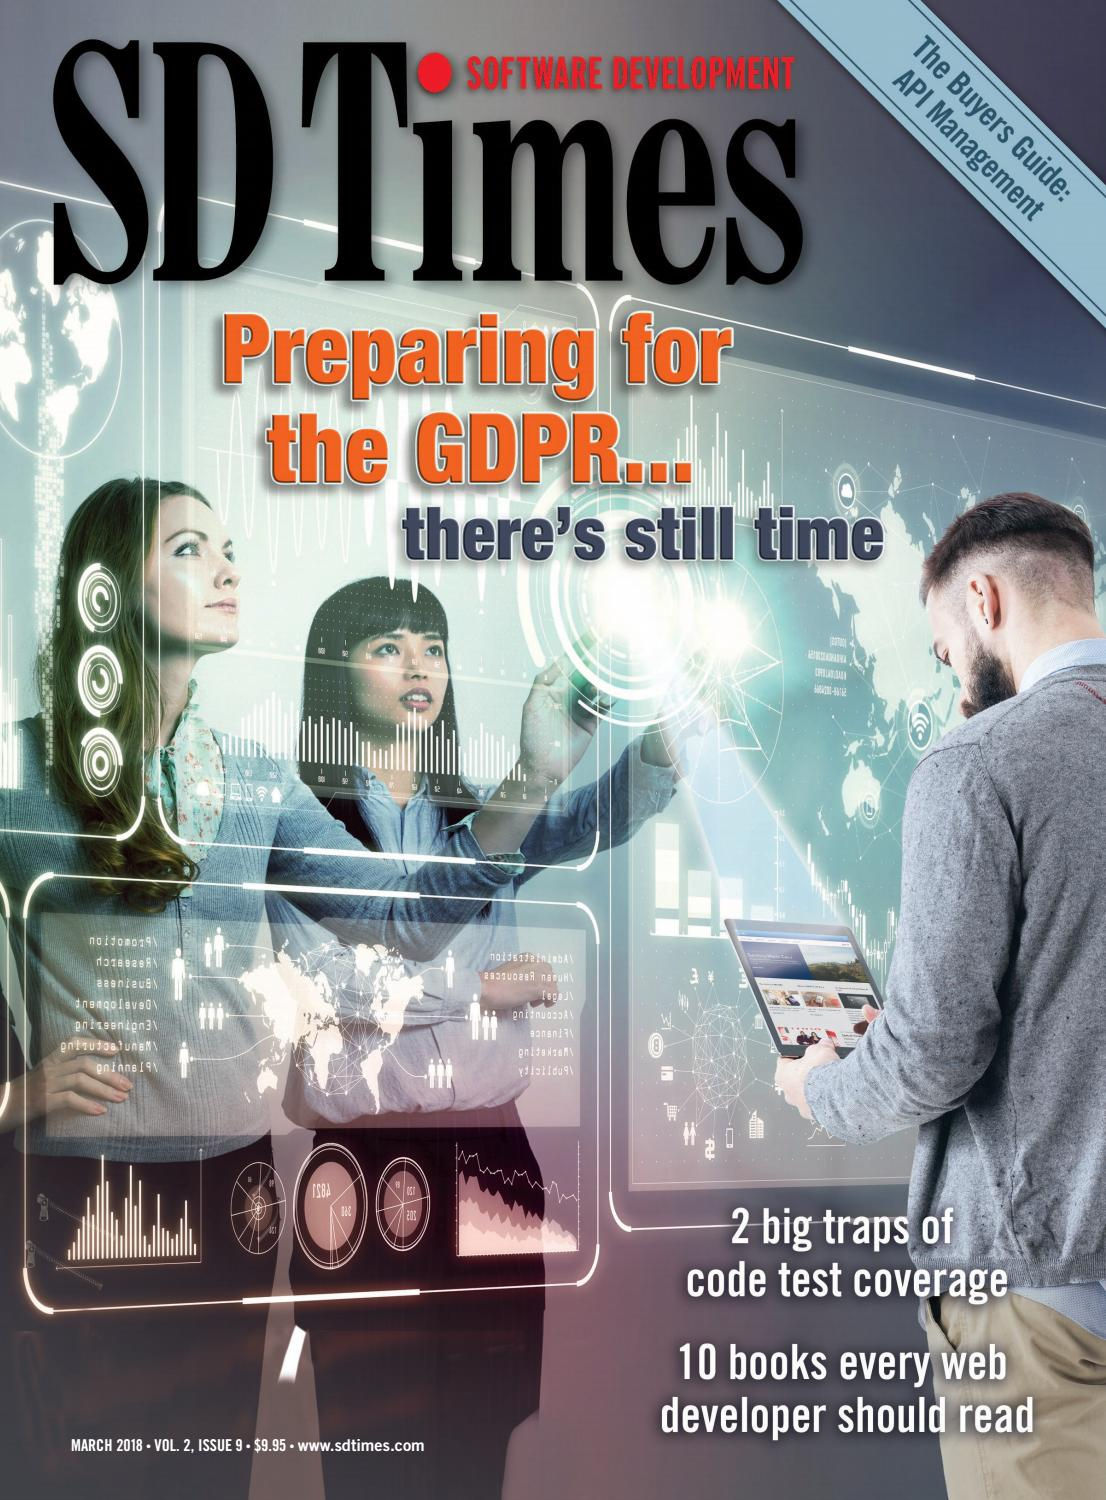 SD Times - March 2018 by d2emerge - issuu